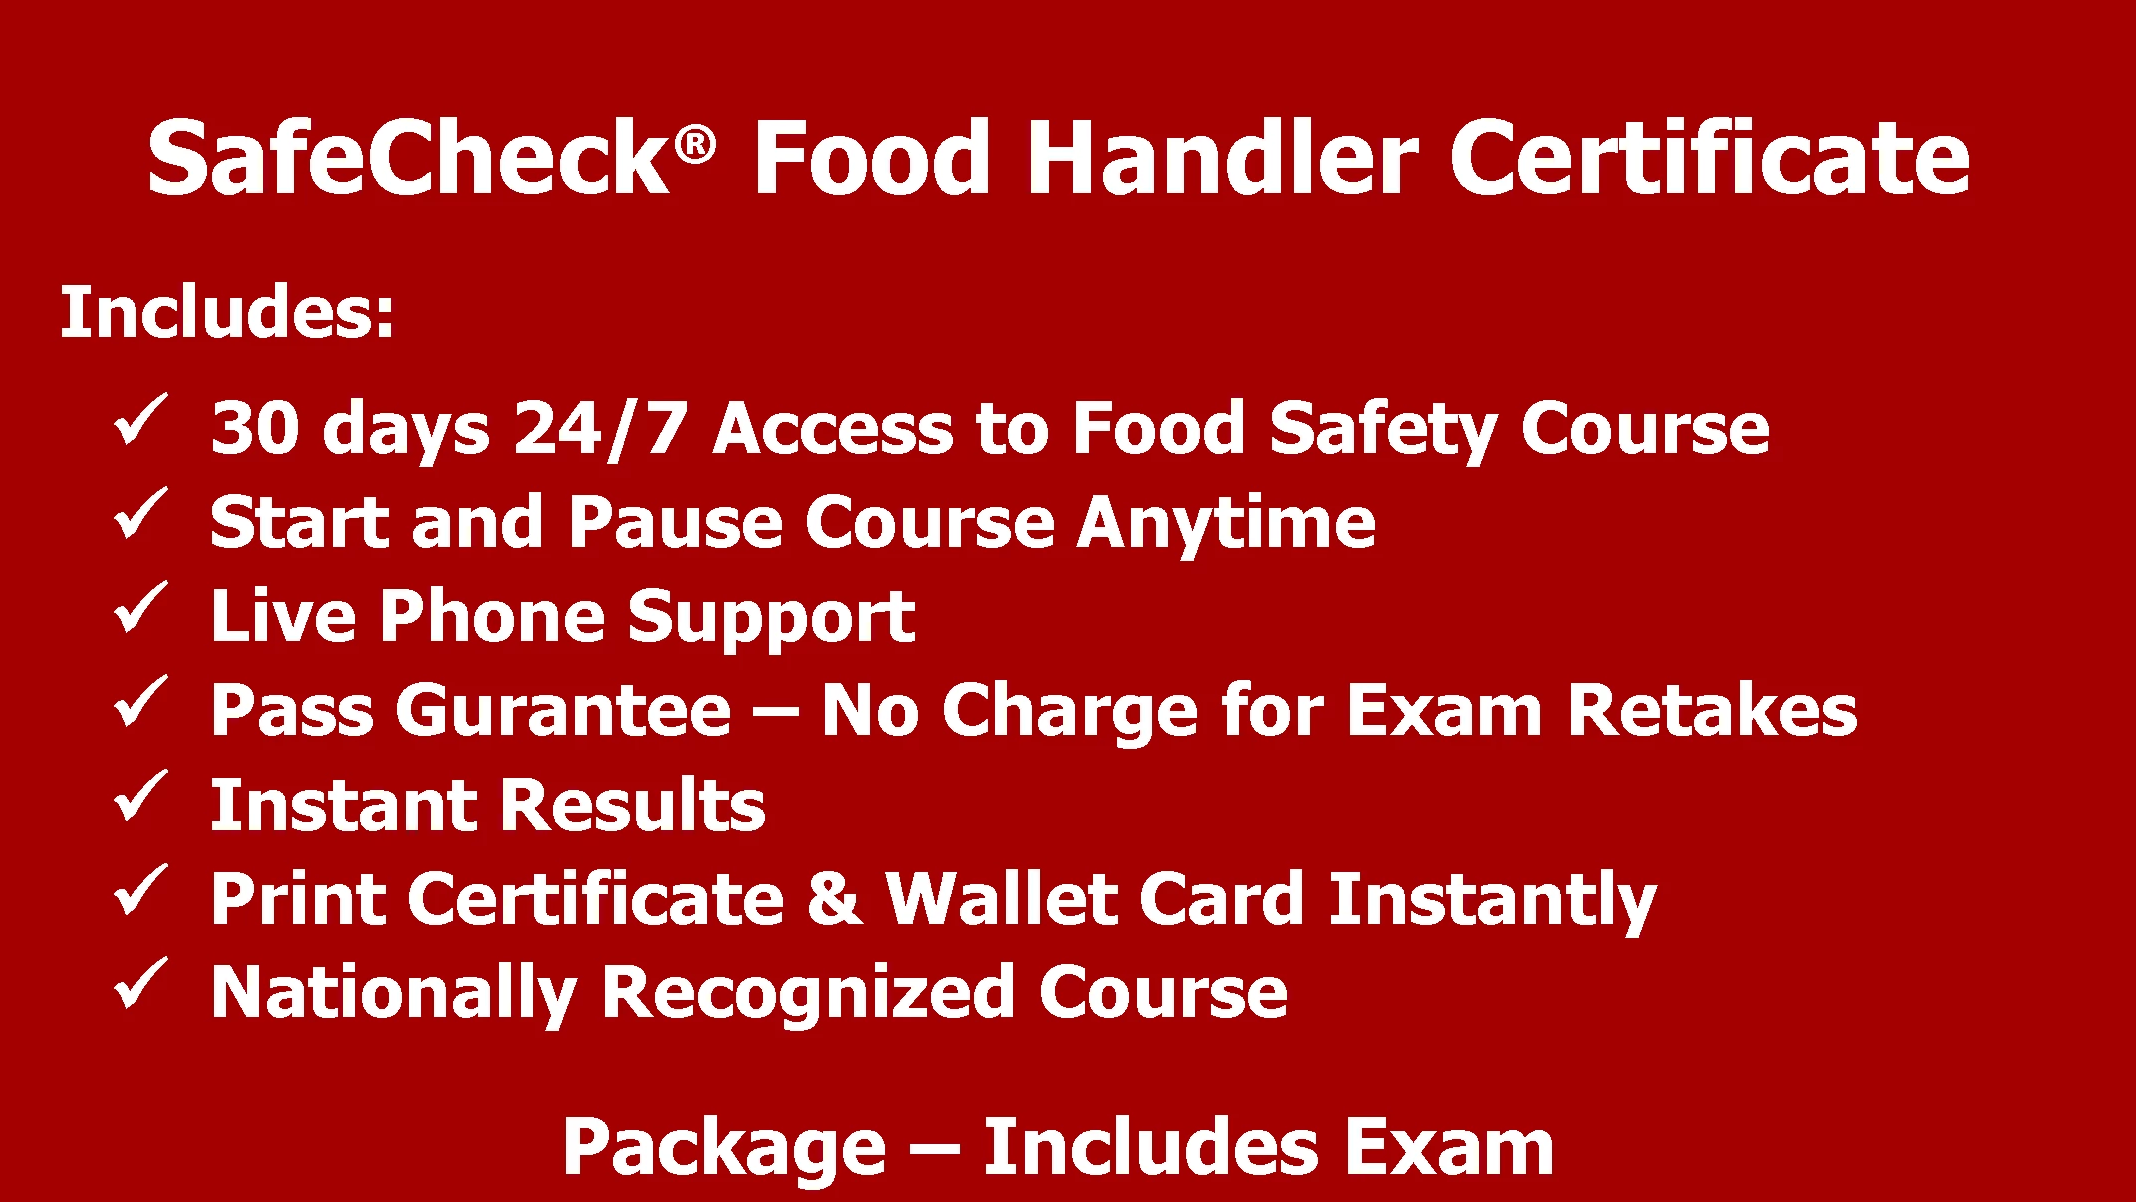 Food Safety Certification - SafeCheck® Advanced - Includes Exam - Pass  Guarantee